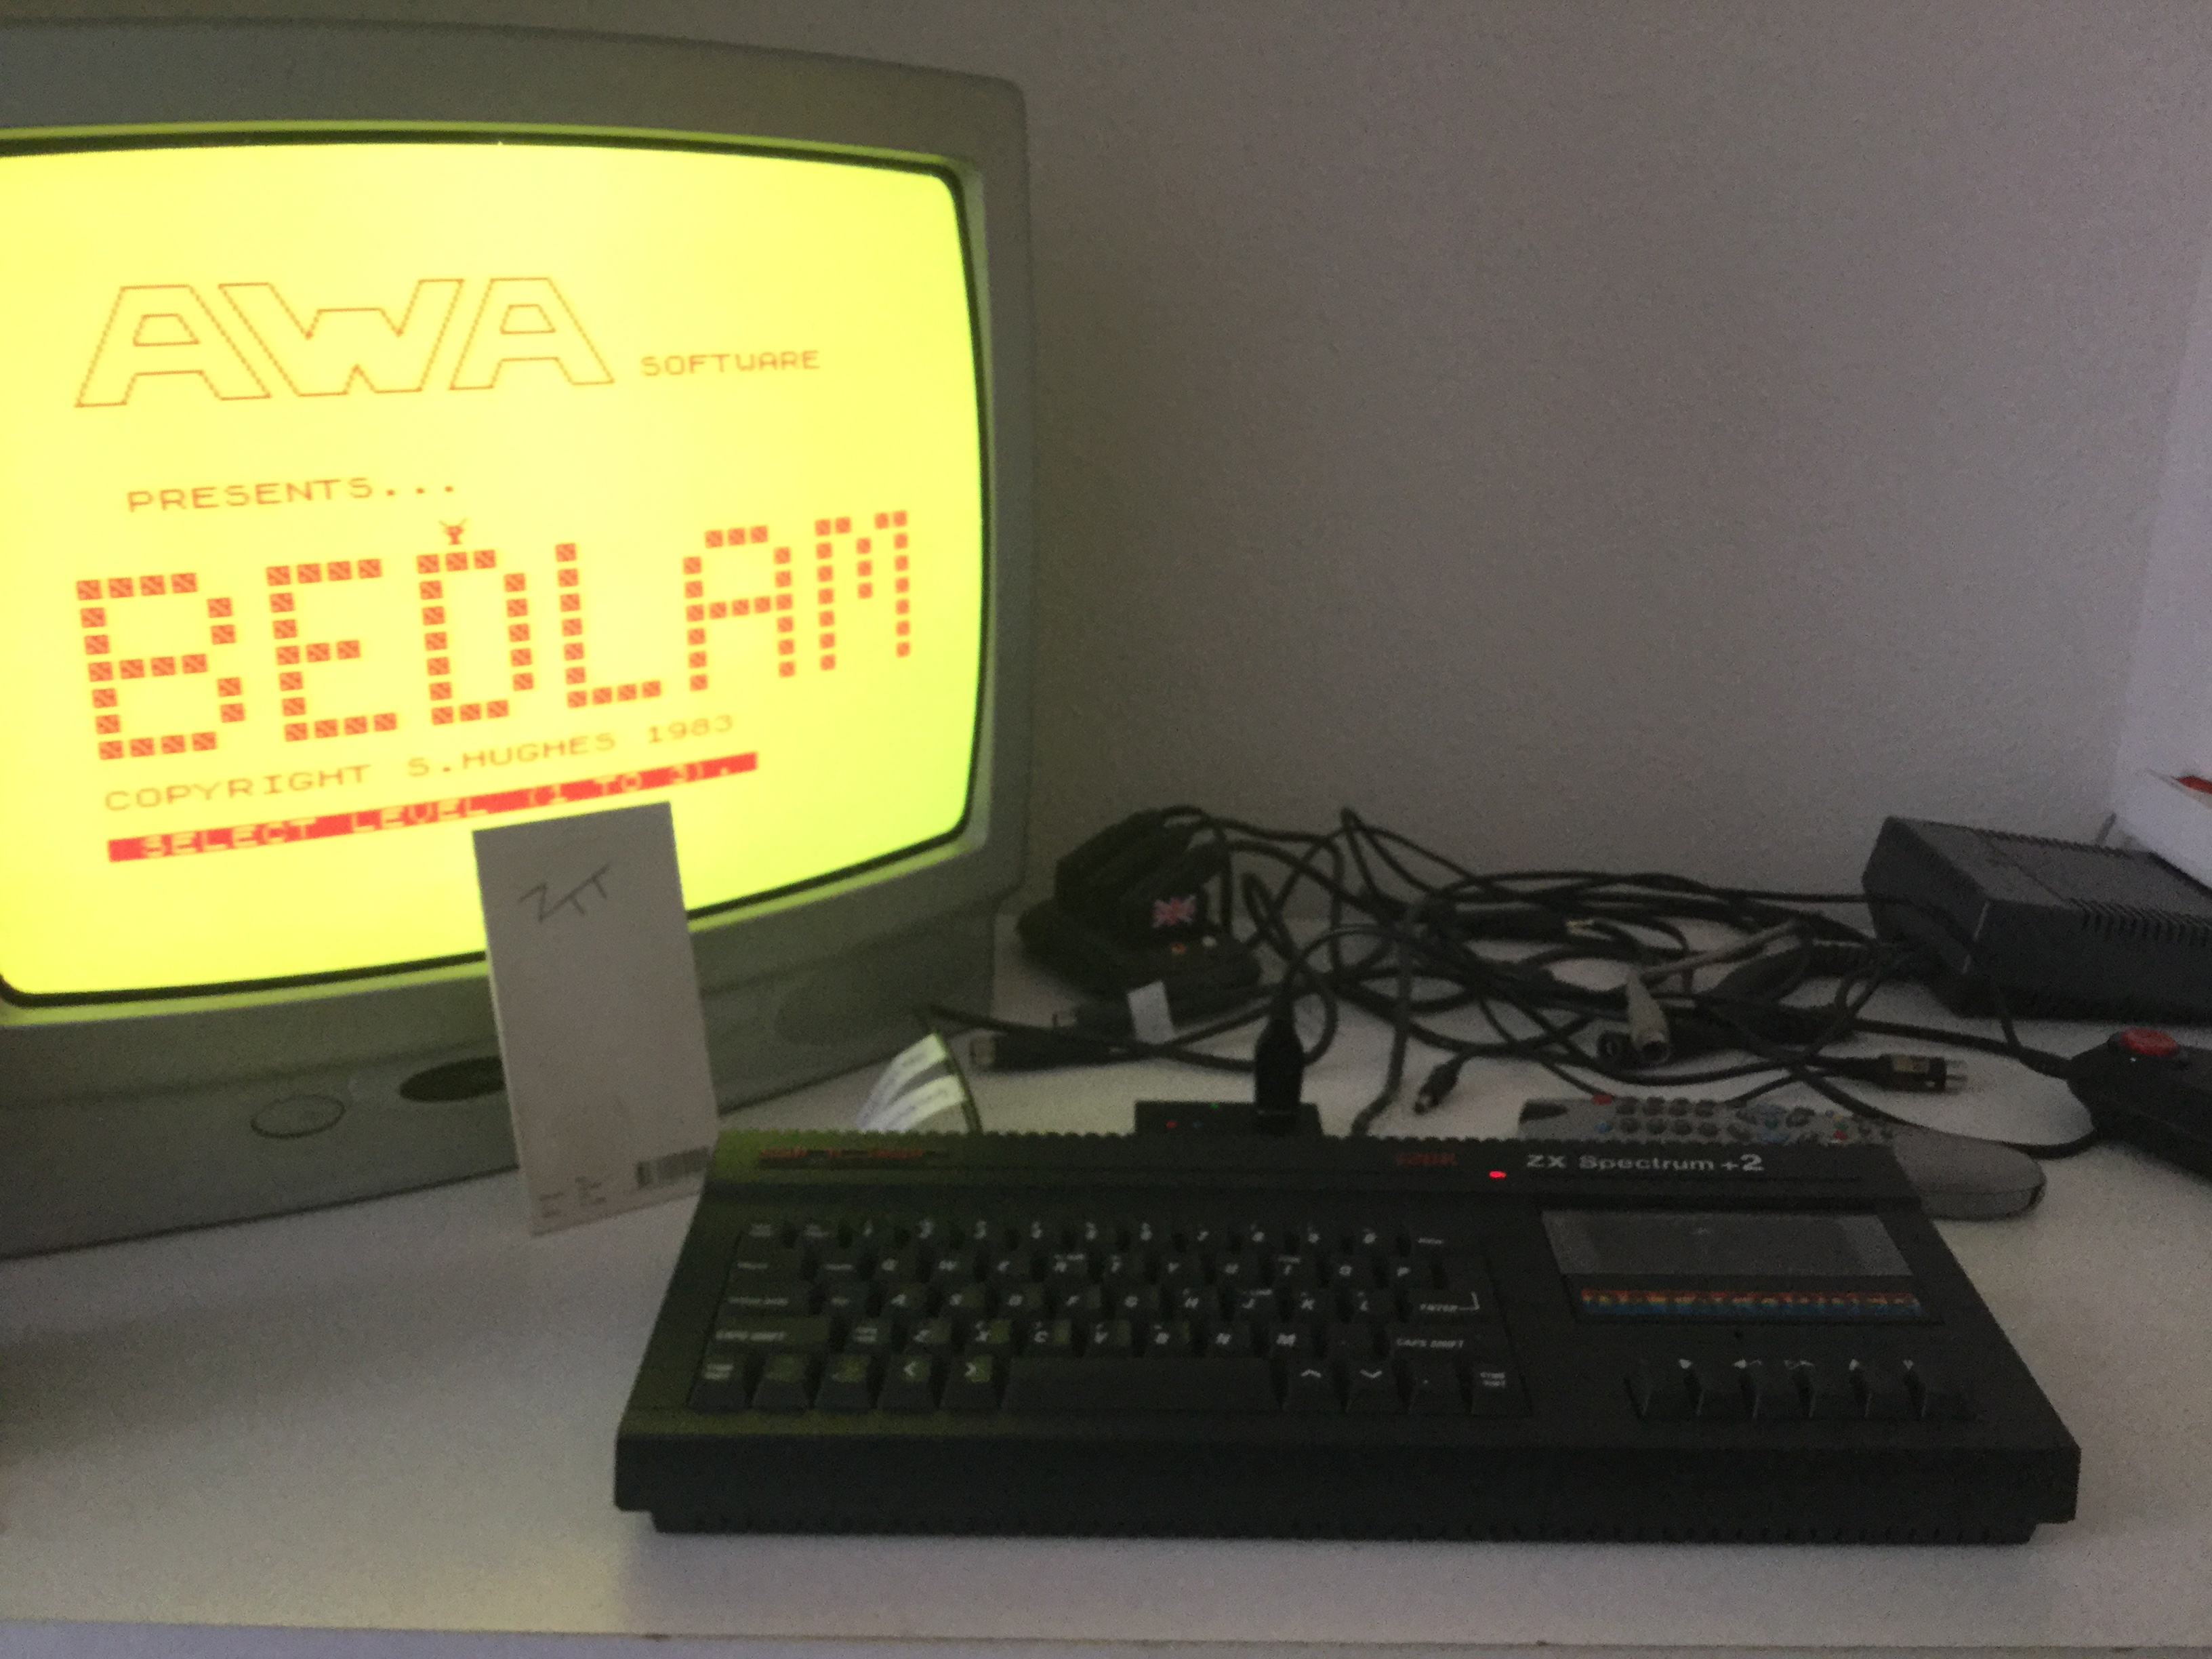 Frankie: Bedlam [AWA Software / MC Lothlorien] [Level 3] (ZX Spectrum) 300 points on 2018-03-01 06:35:59